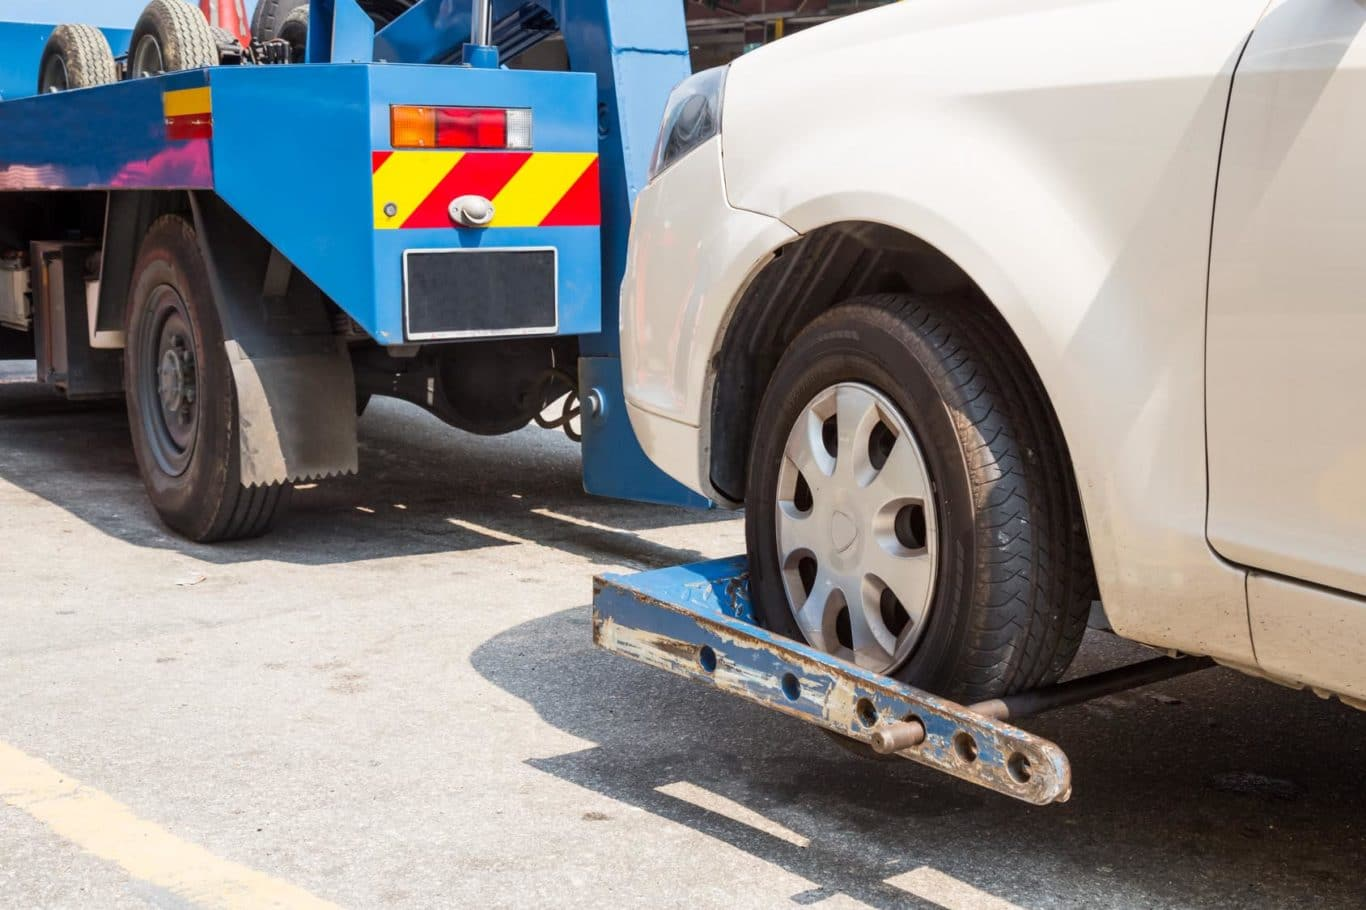 Kilcoole expert Car Towing services